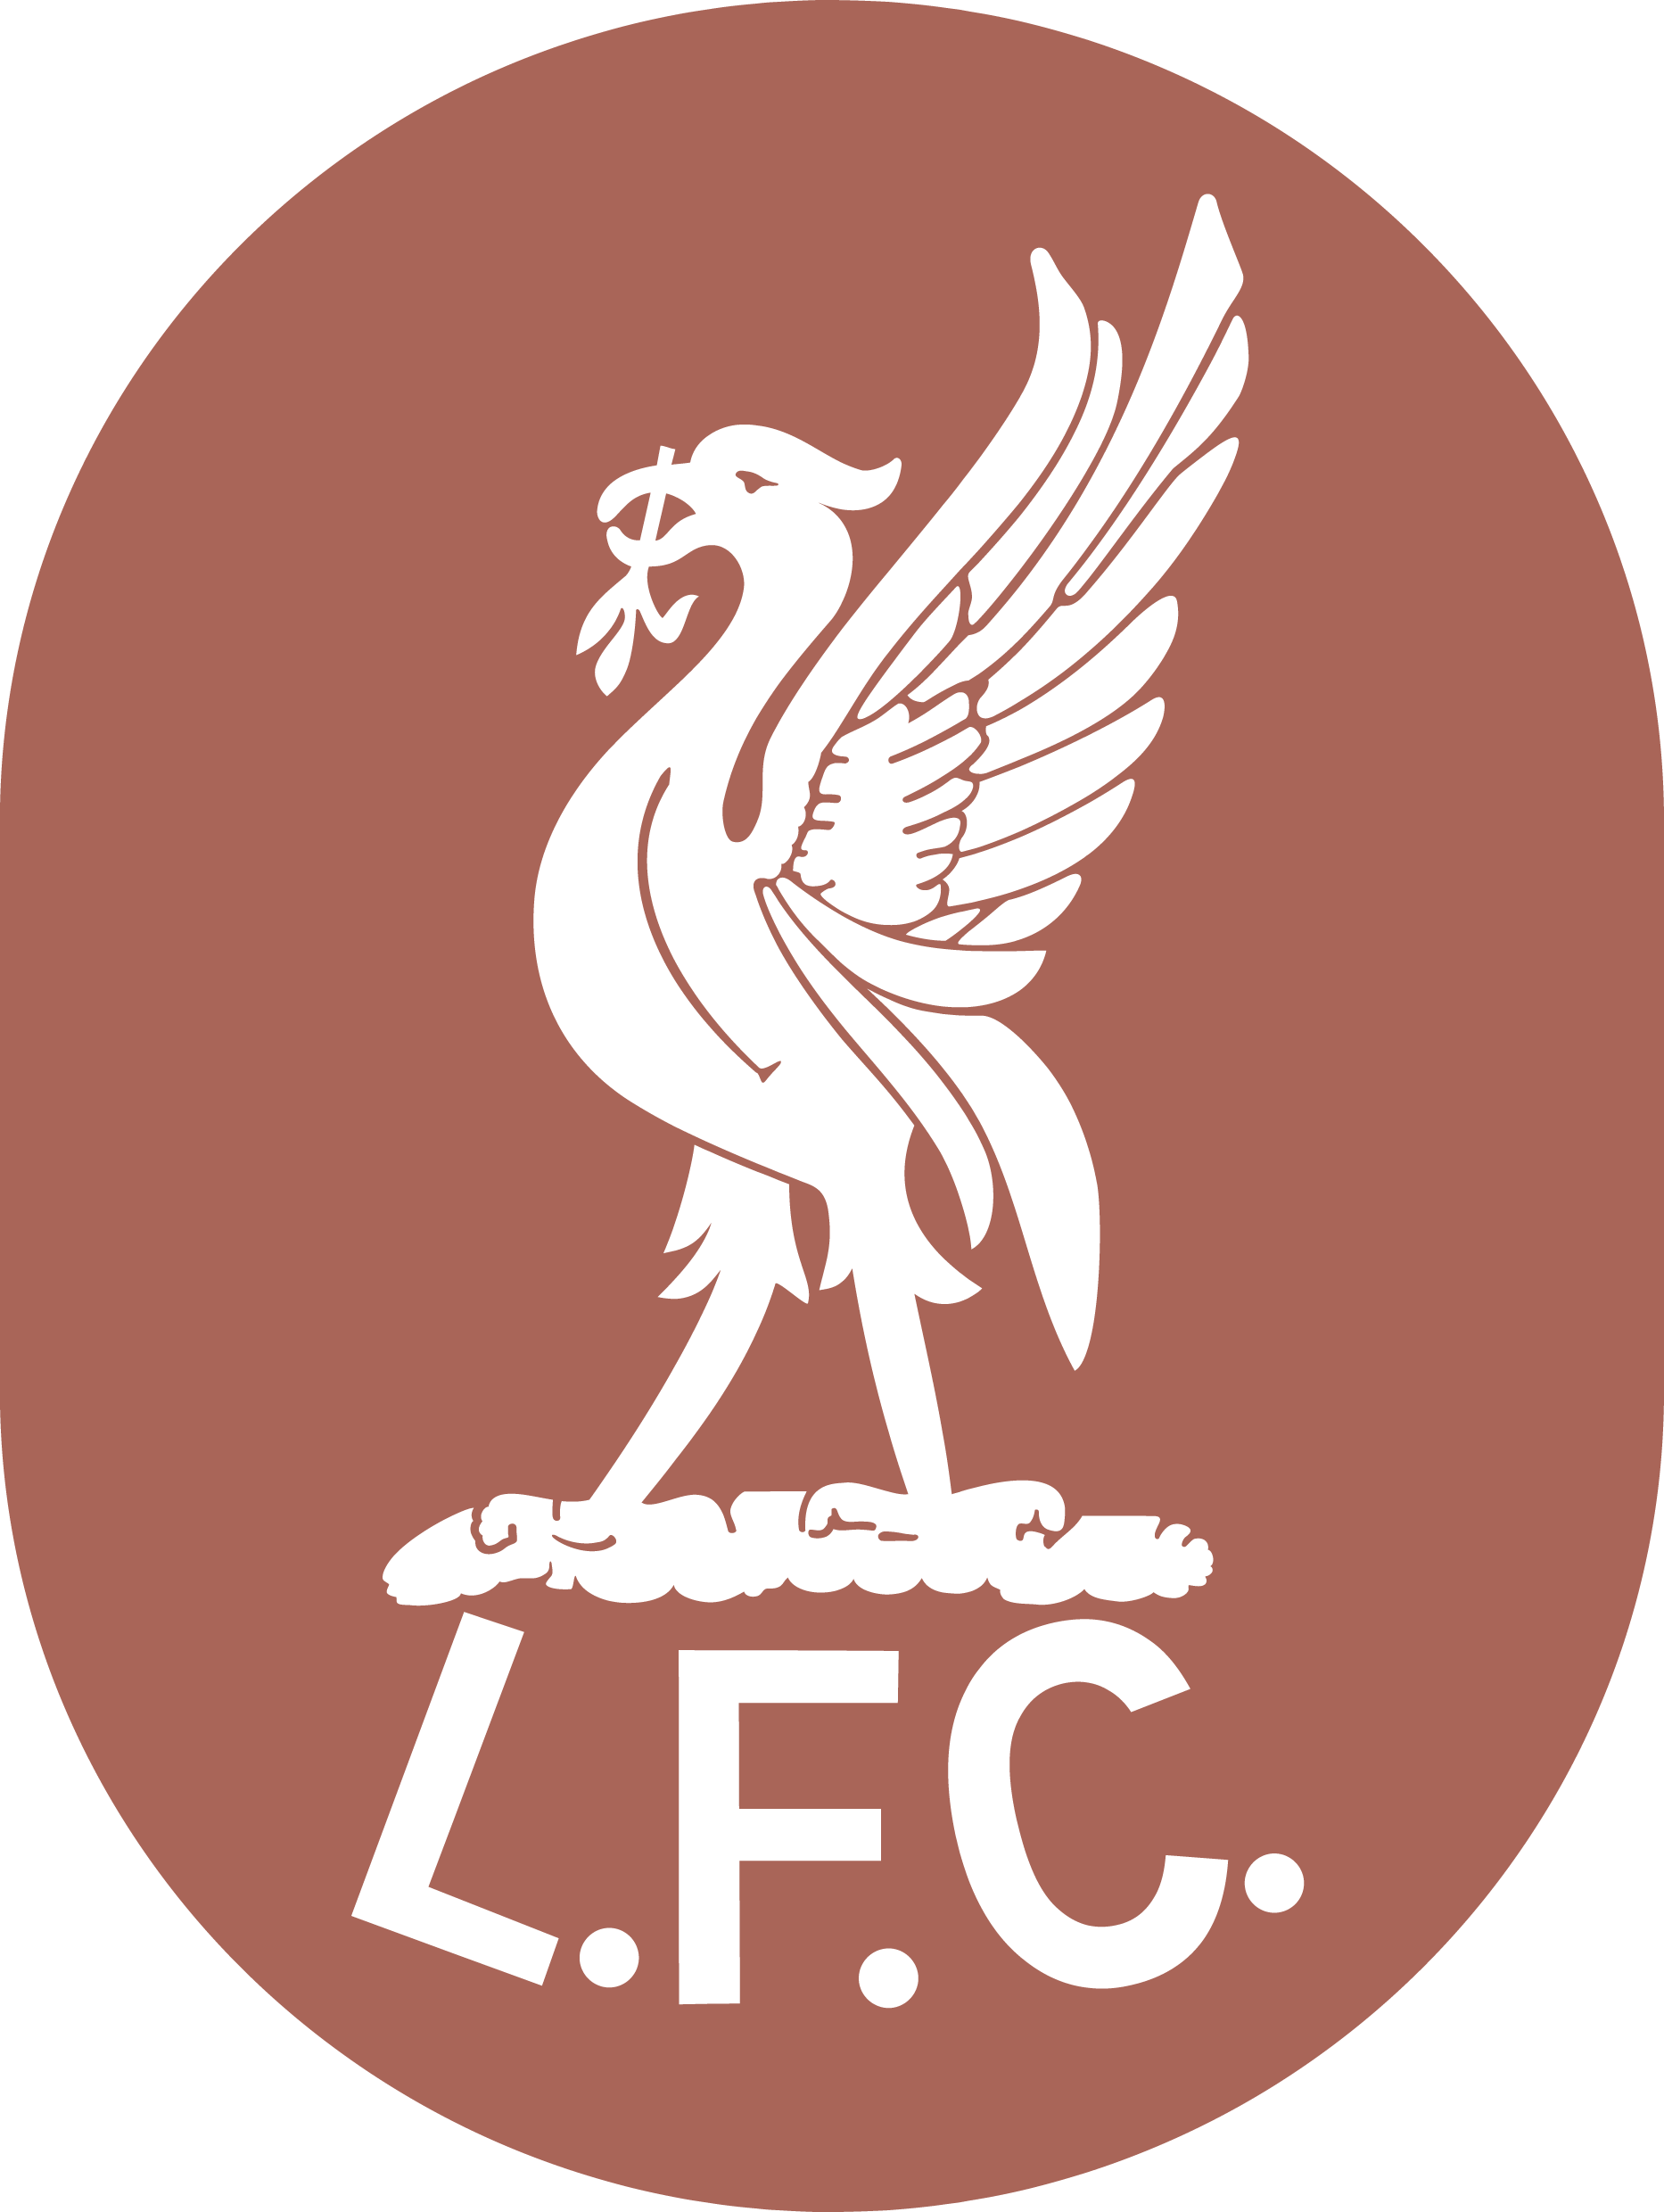 Liverpool | Liverpool | Vector free download, Crest logo, Logos